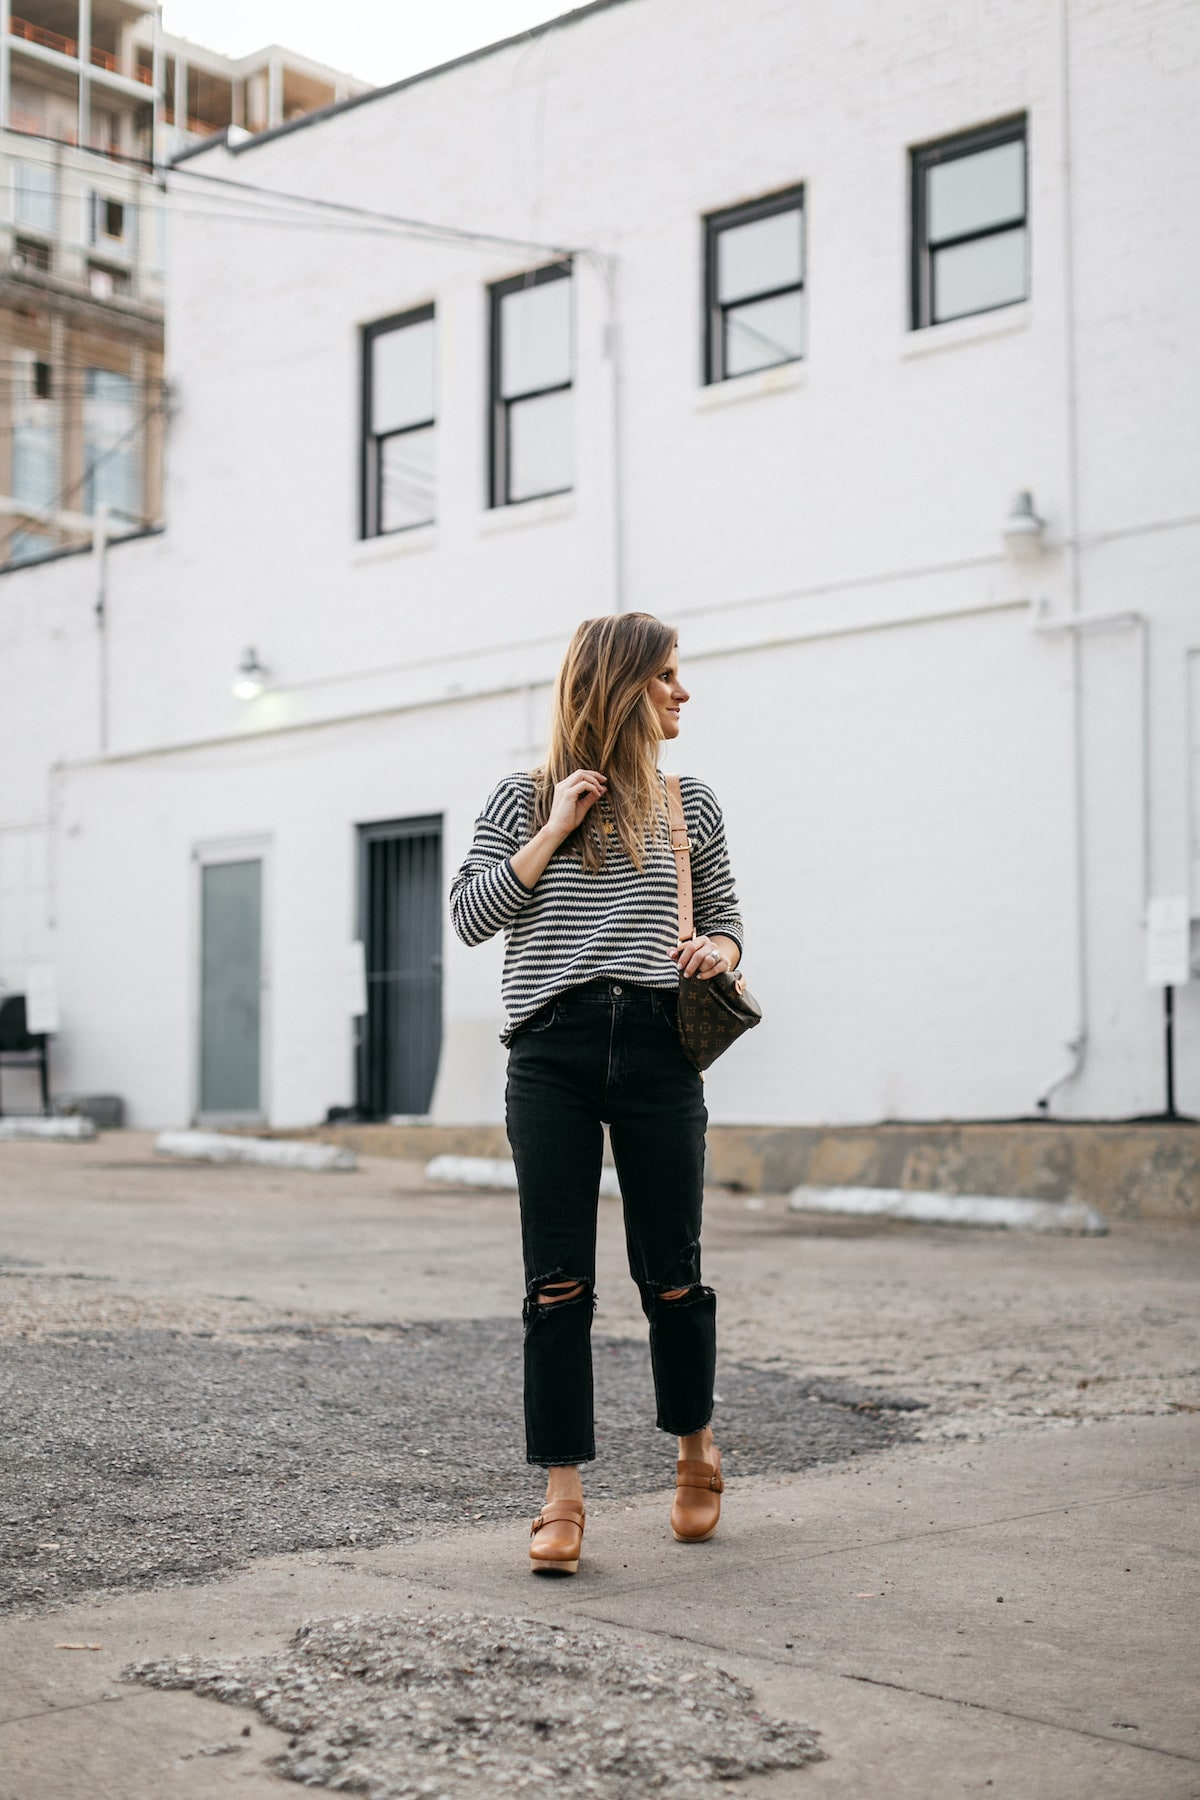 Brighton Butler wearing madewell clogs, striped sweater, black abercrombie jeans and bumbag